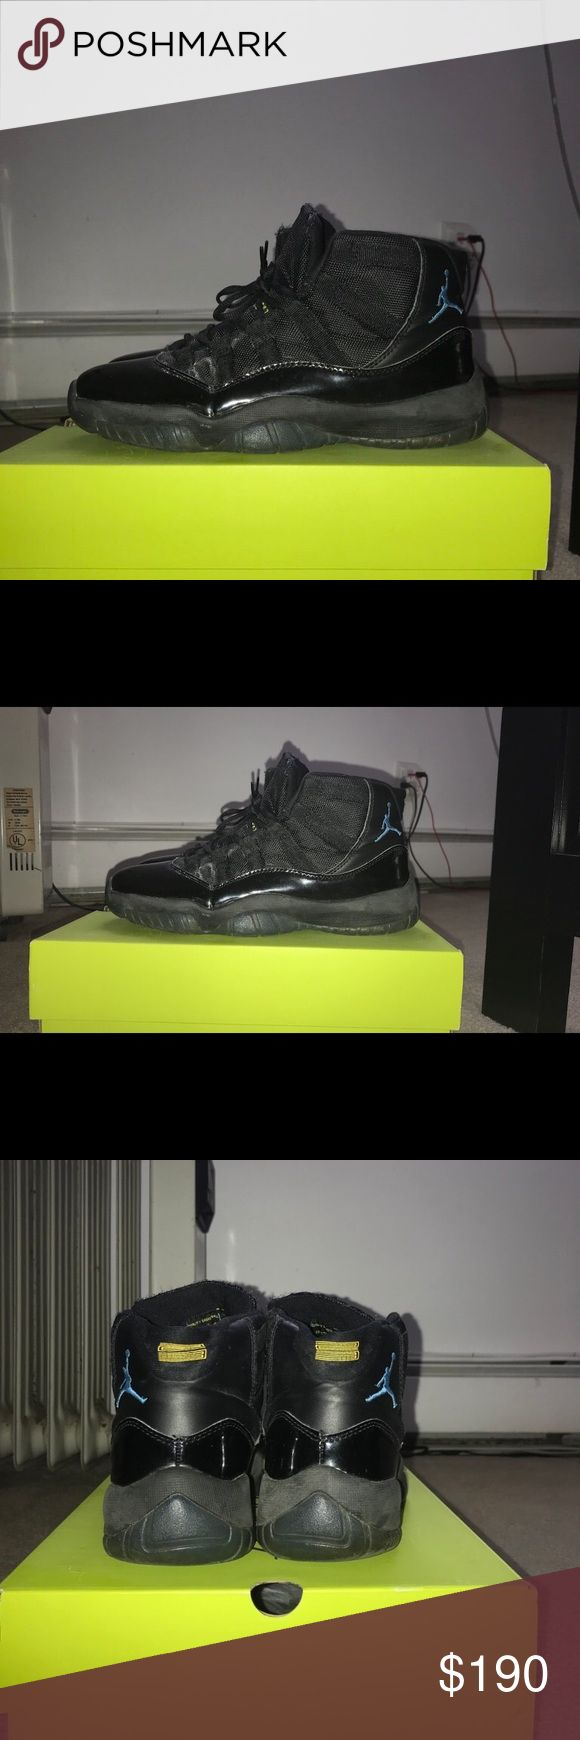 Retro Jordan Gamma 11s -Size 8.5 -Kept clean has few marks but easy to clean right off -Took out in soles because of basketball Jordan Shoes Sneakers